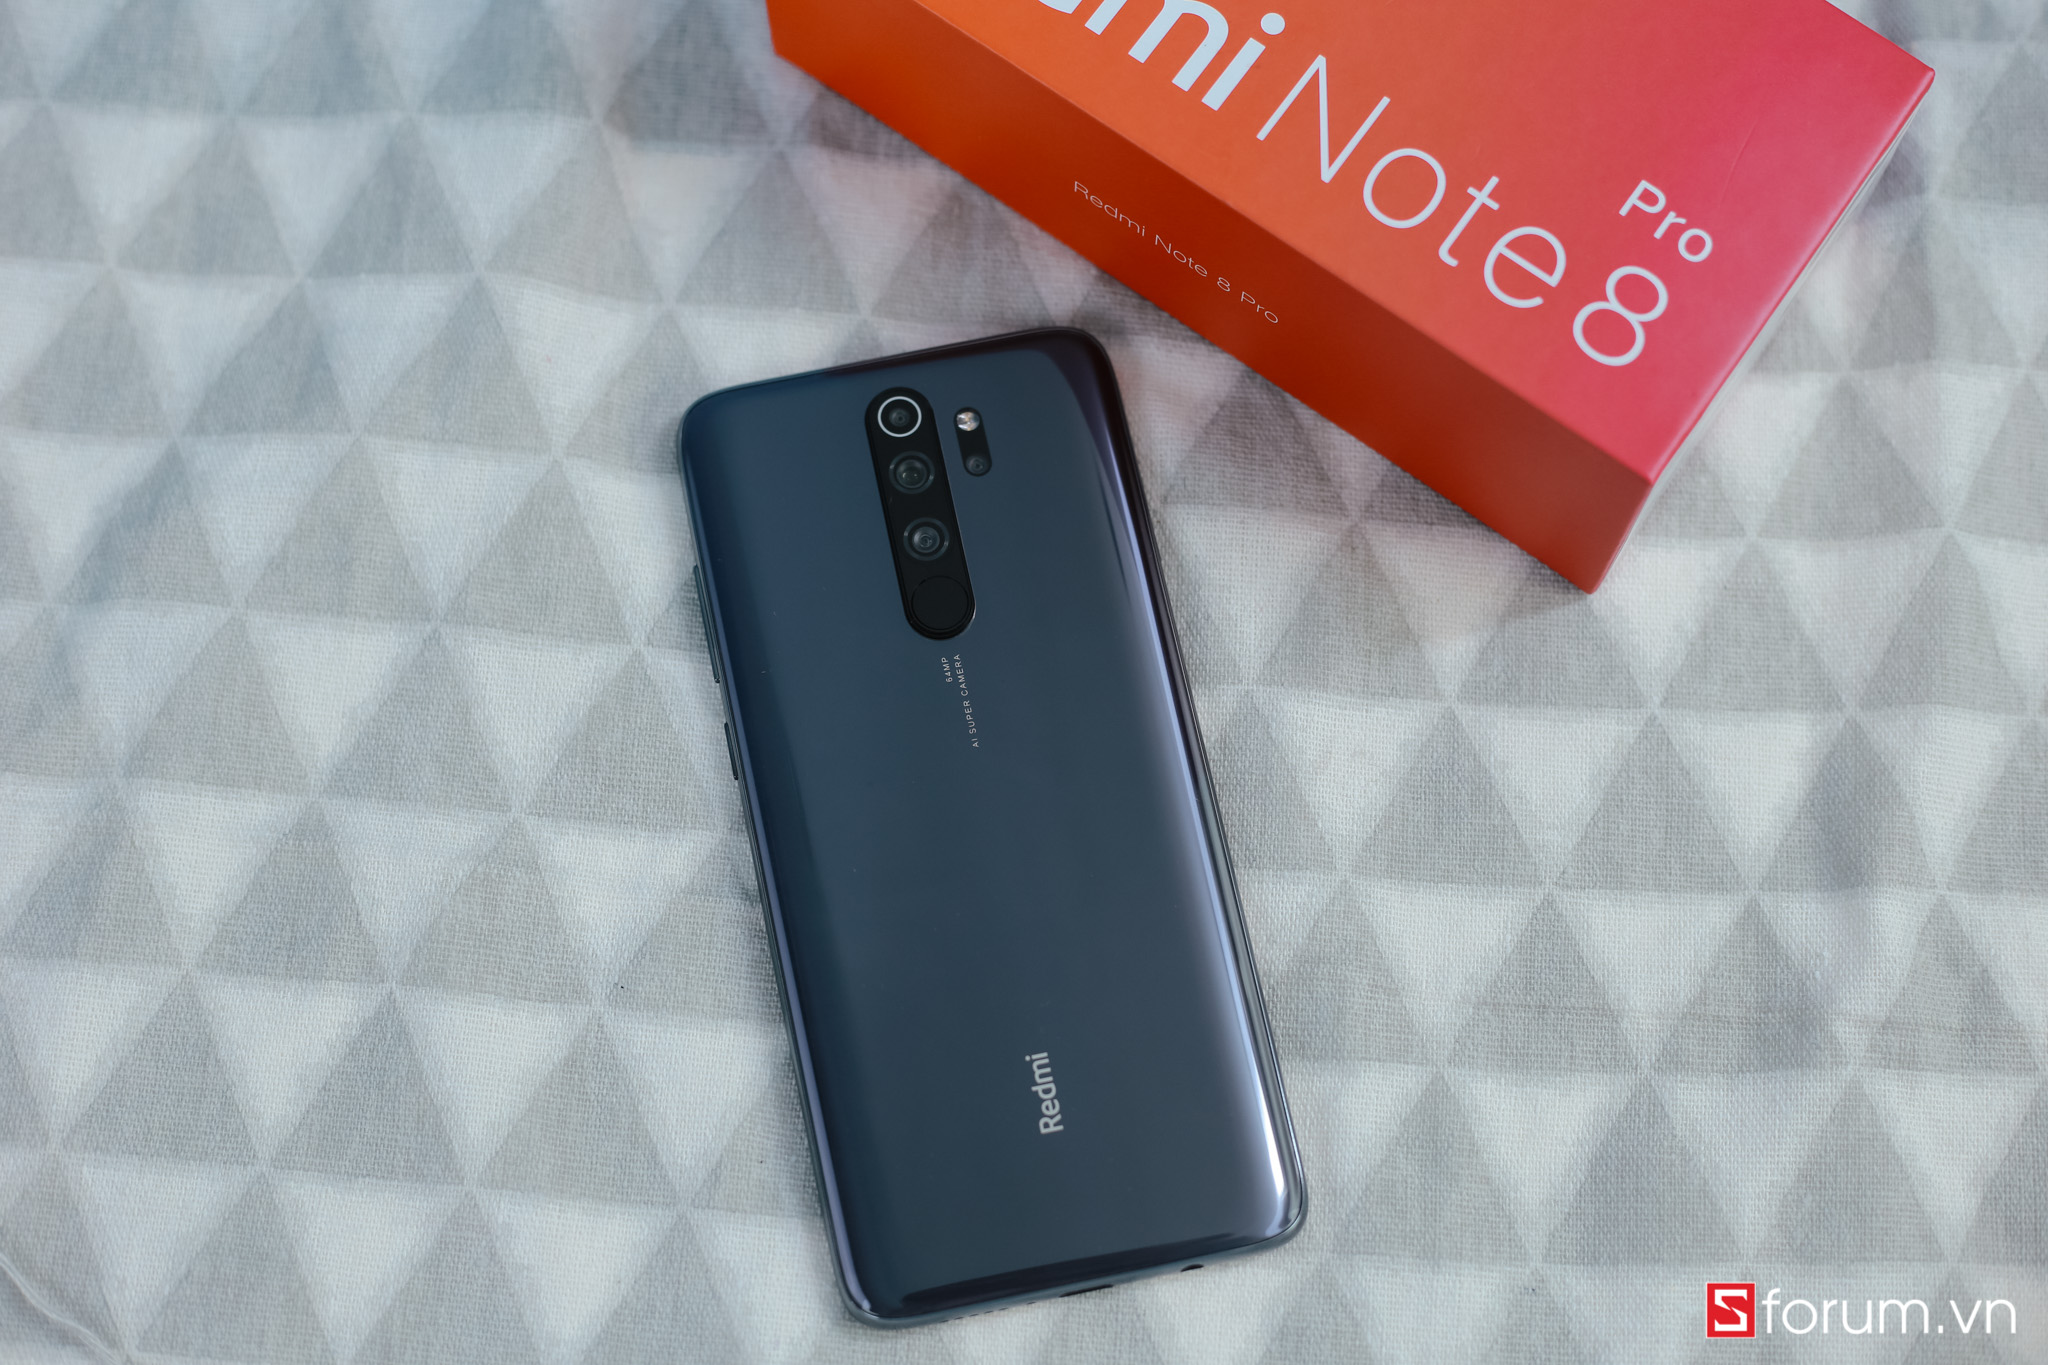 Sforum - Latest technology information page IMG_9822 On the hands of the first Redmi Note 8 Pro in Vietnam: New design, 64MP camera